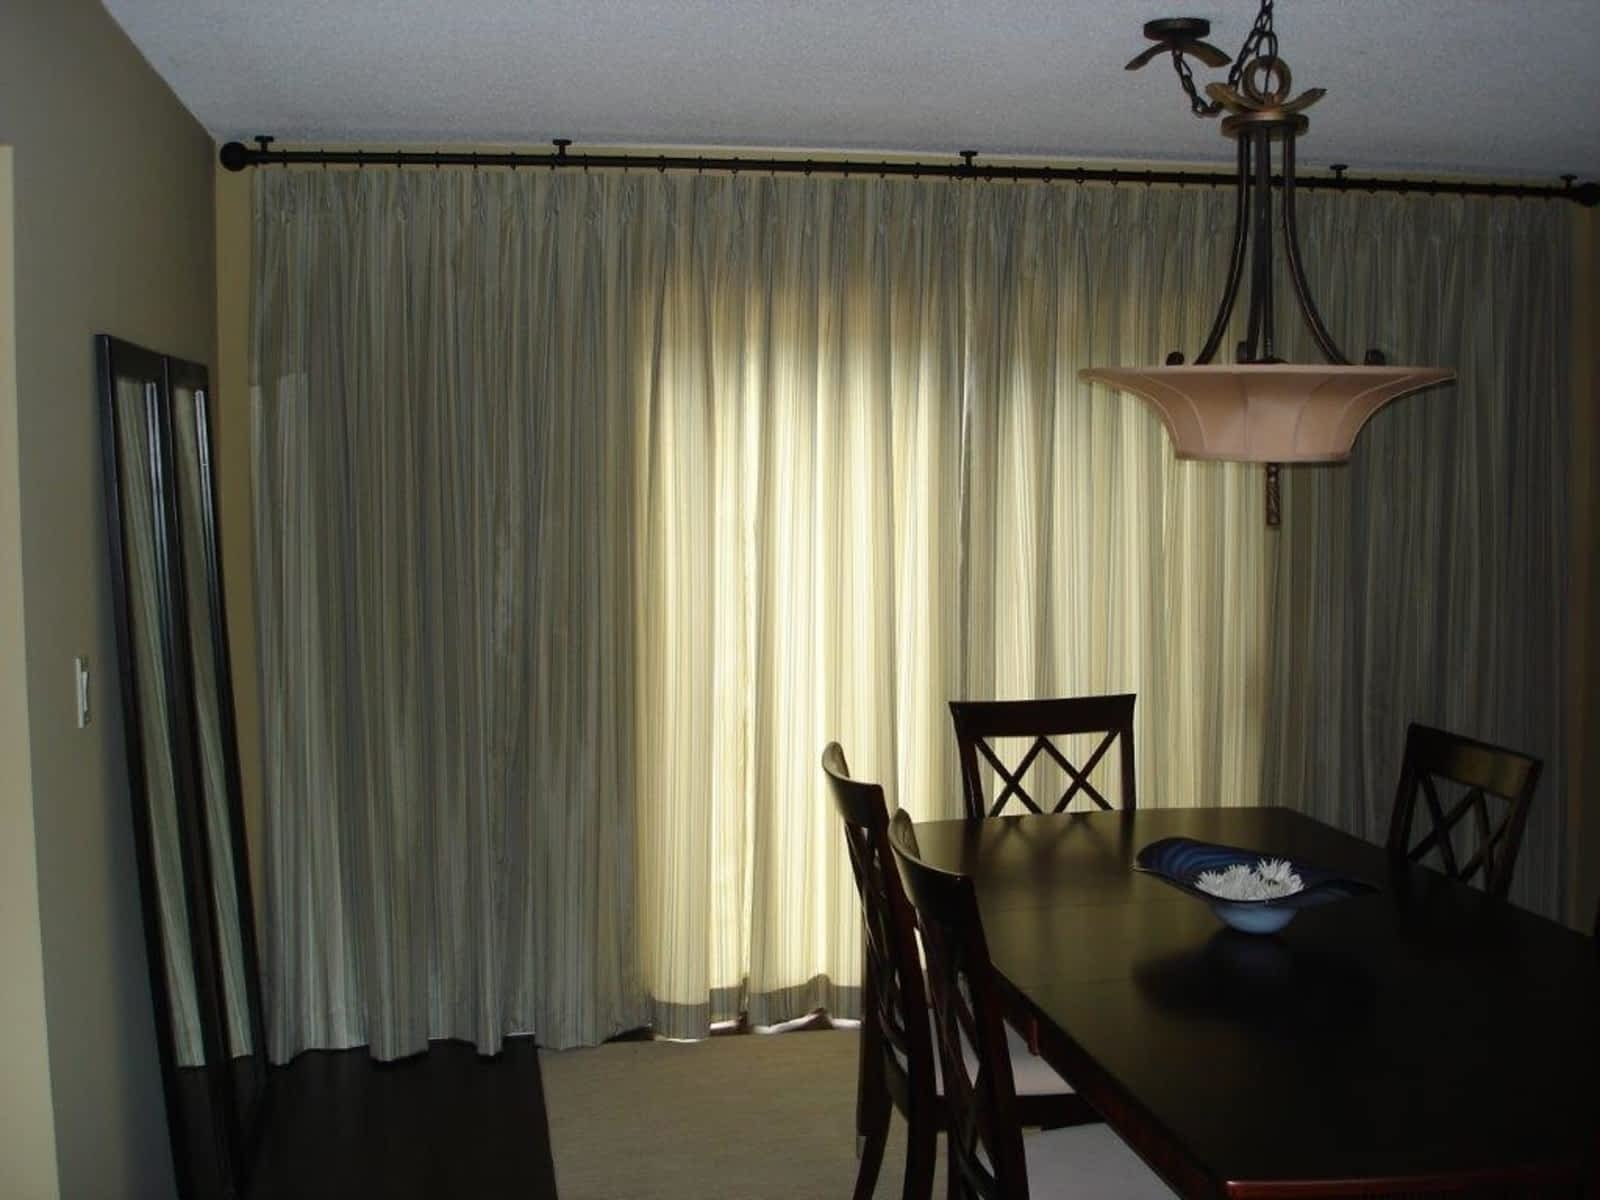 blinds select discount stmaryofthehills reviews cellular code filtering light shade bamboo